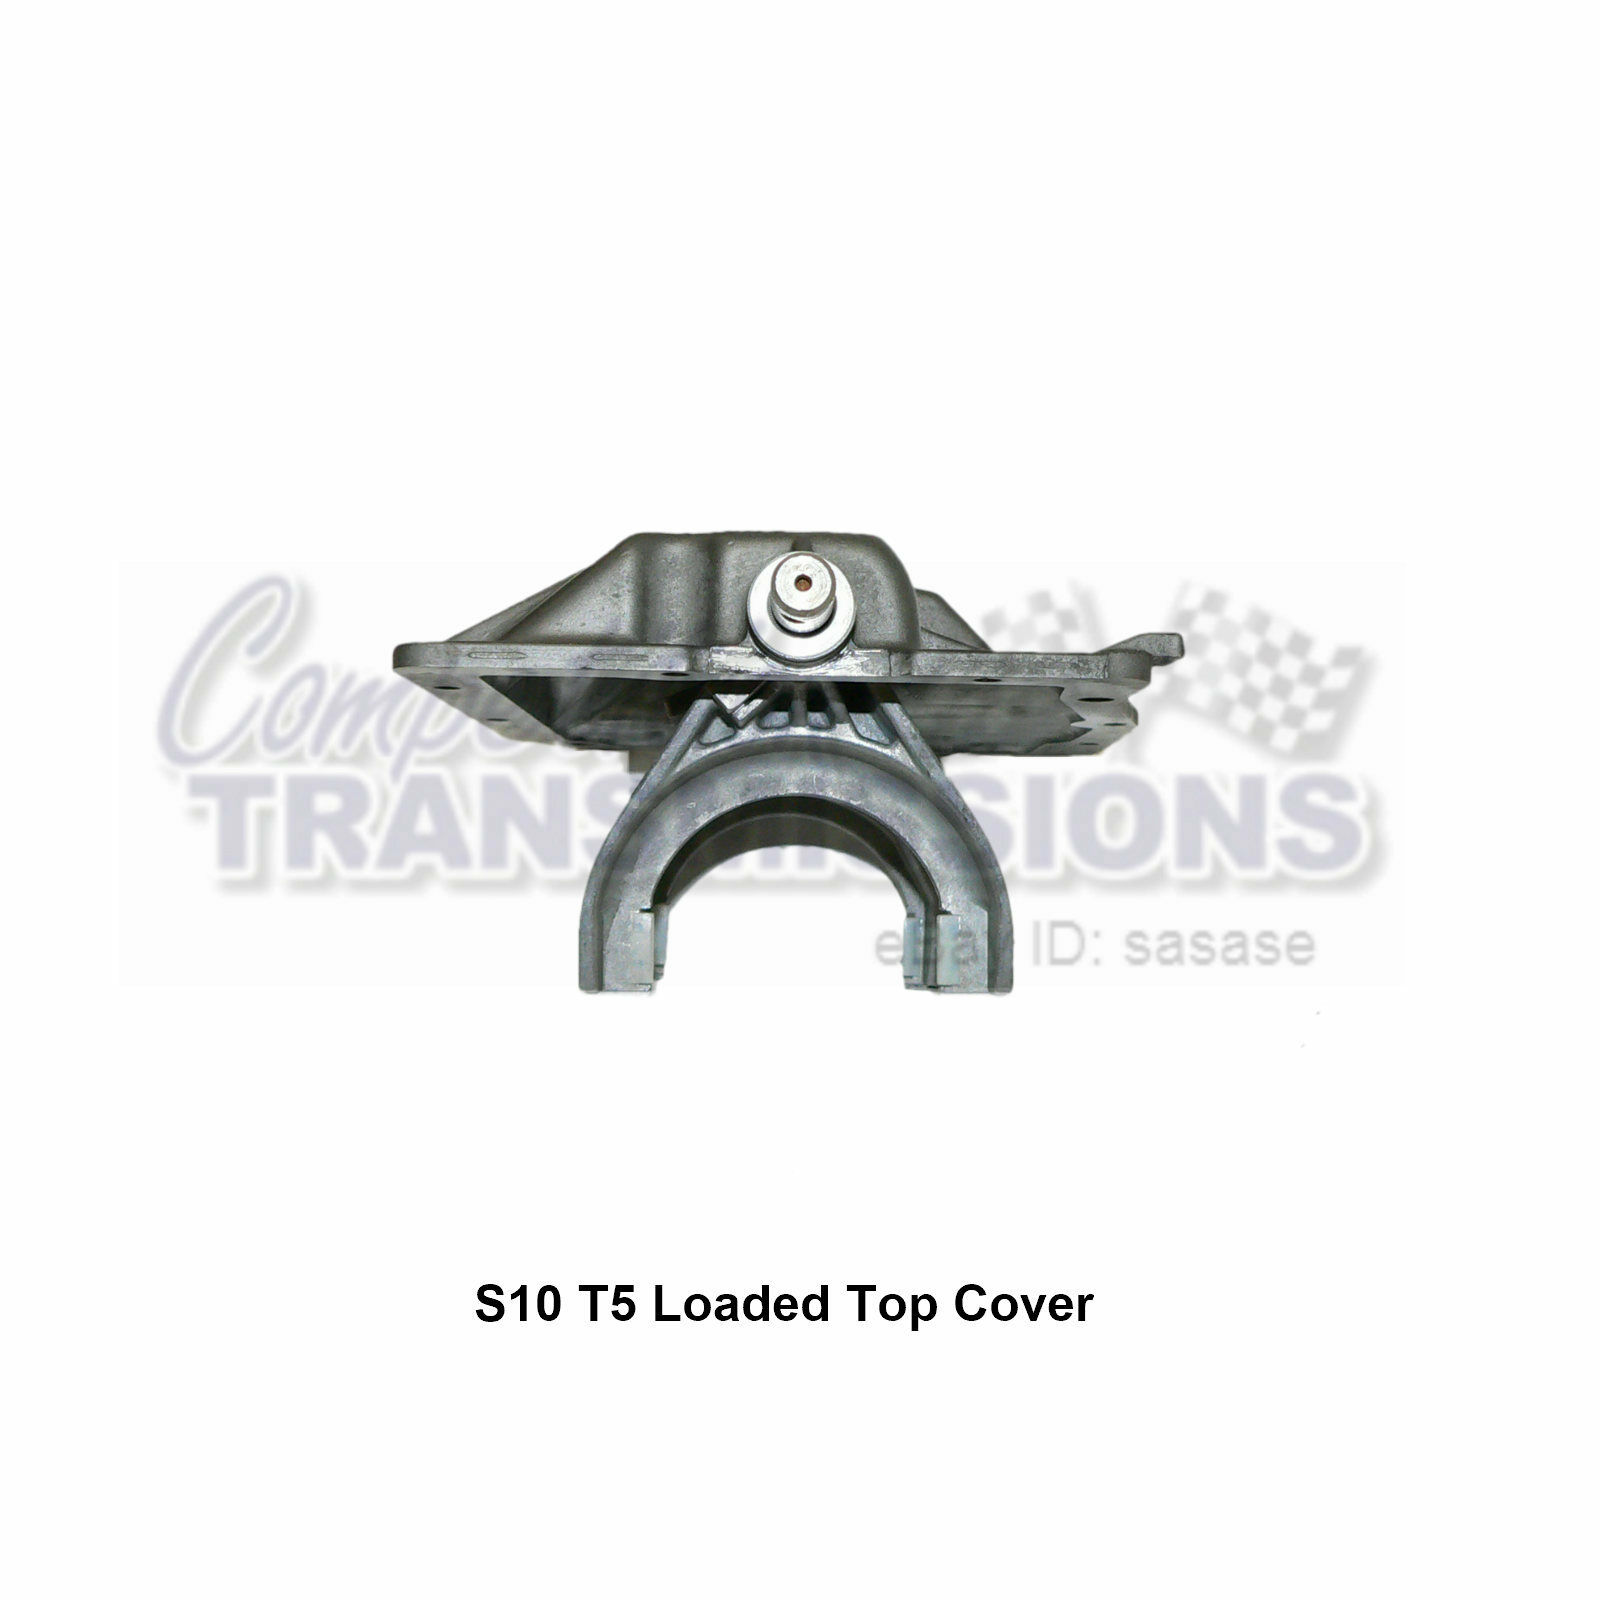 T5 Top Cover with Forks USED 5 Sp Transmission Camaro Firebird NEW Fork Pads